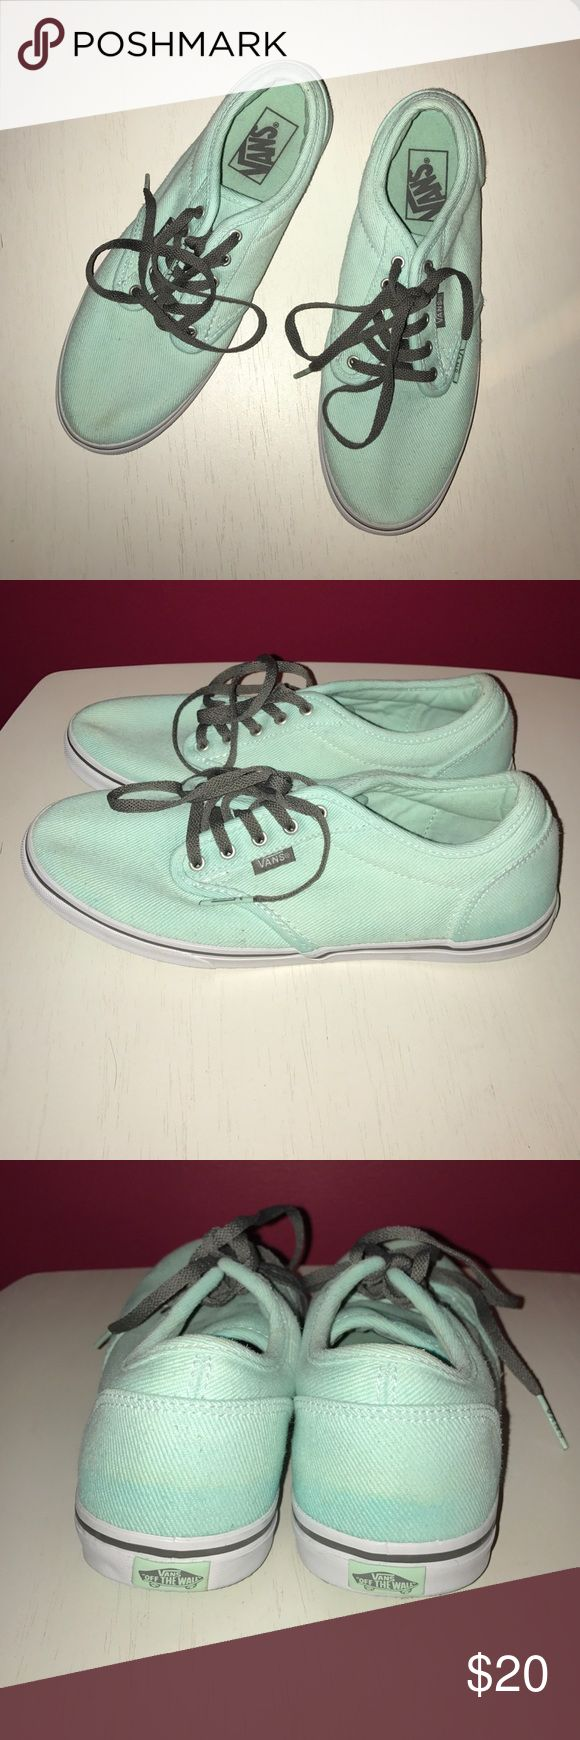 VANS Teal sneakers size 8 Teal VANS. Perfect condition - worn once. 100% authentic Vans Shoes Sneakers